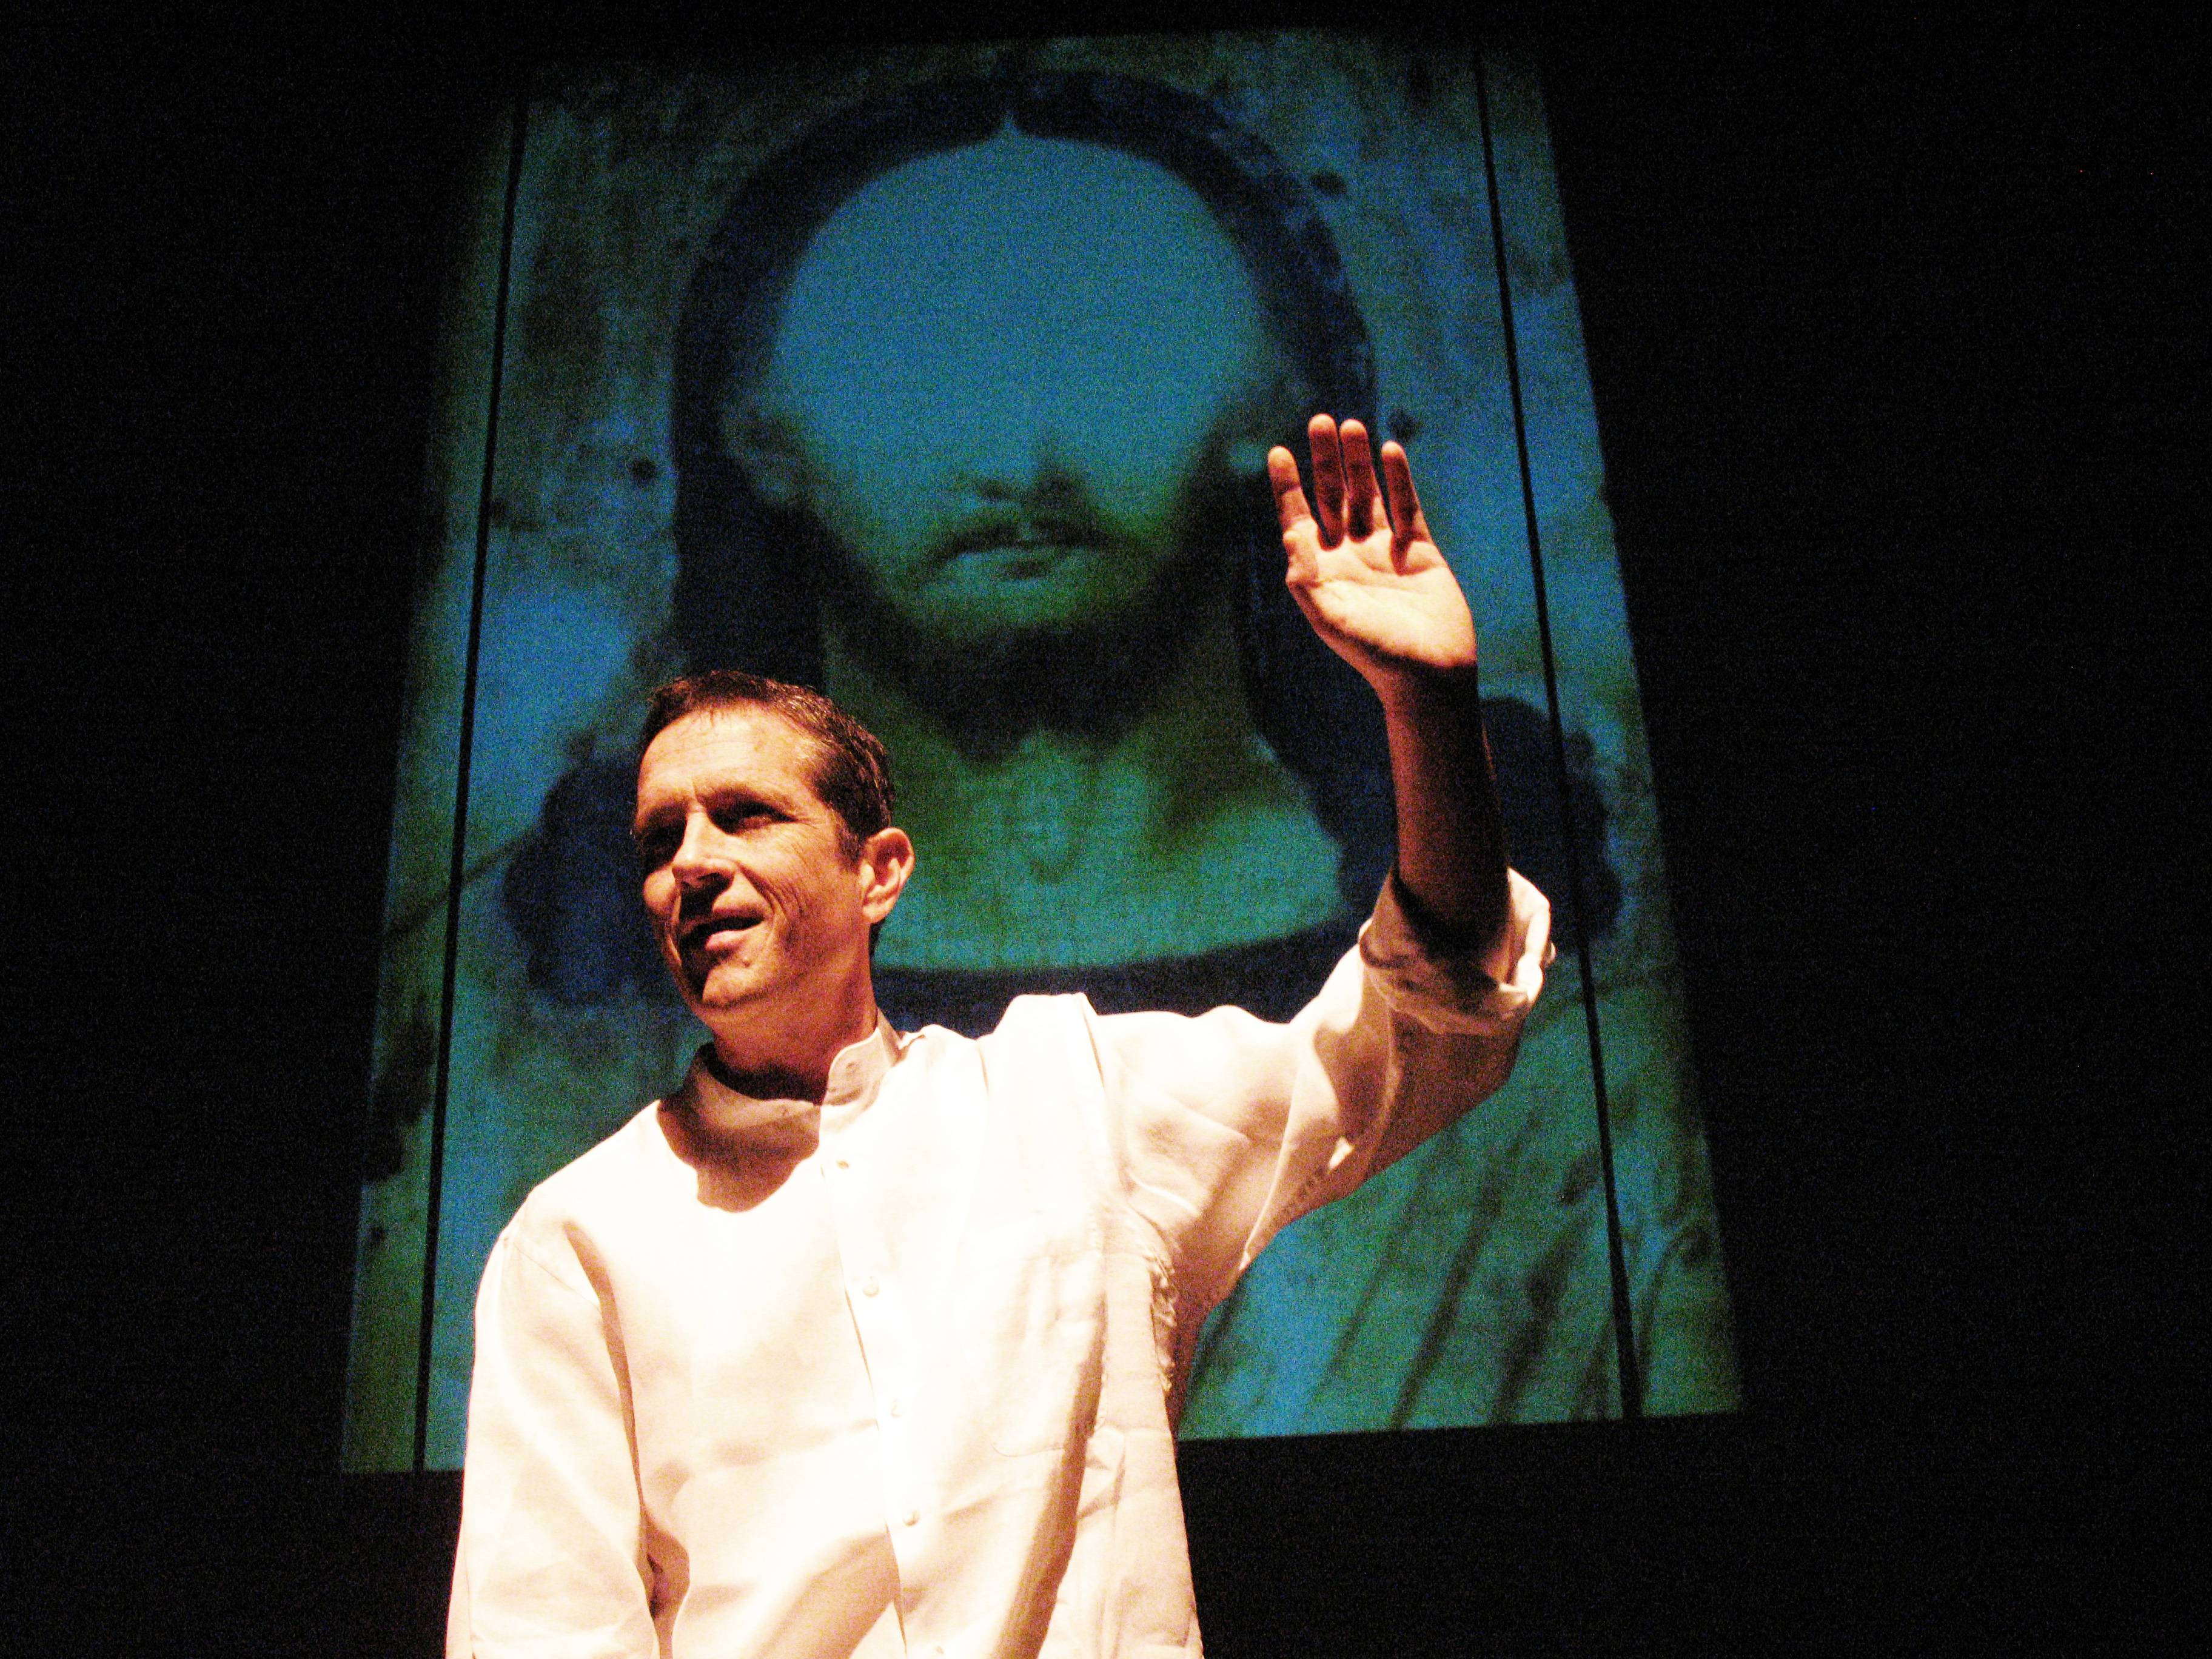 Off-Broadway Actor Brad Sherill captivates audiences with riveting performance of Jesus' words in 'Red Letter Jesus' playing at Provision Theater through October 13.